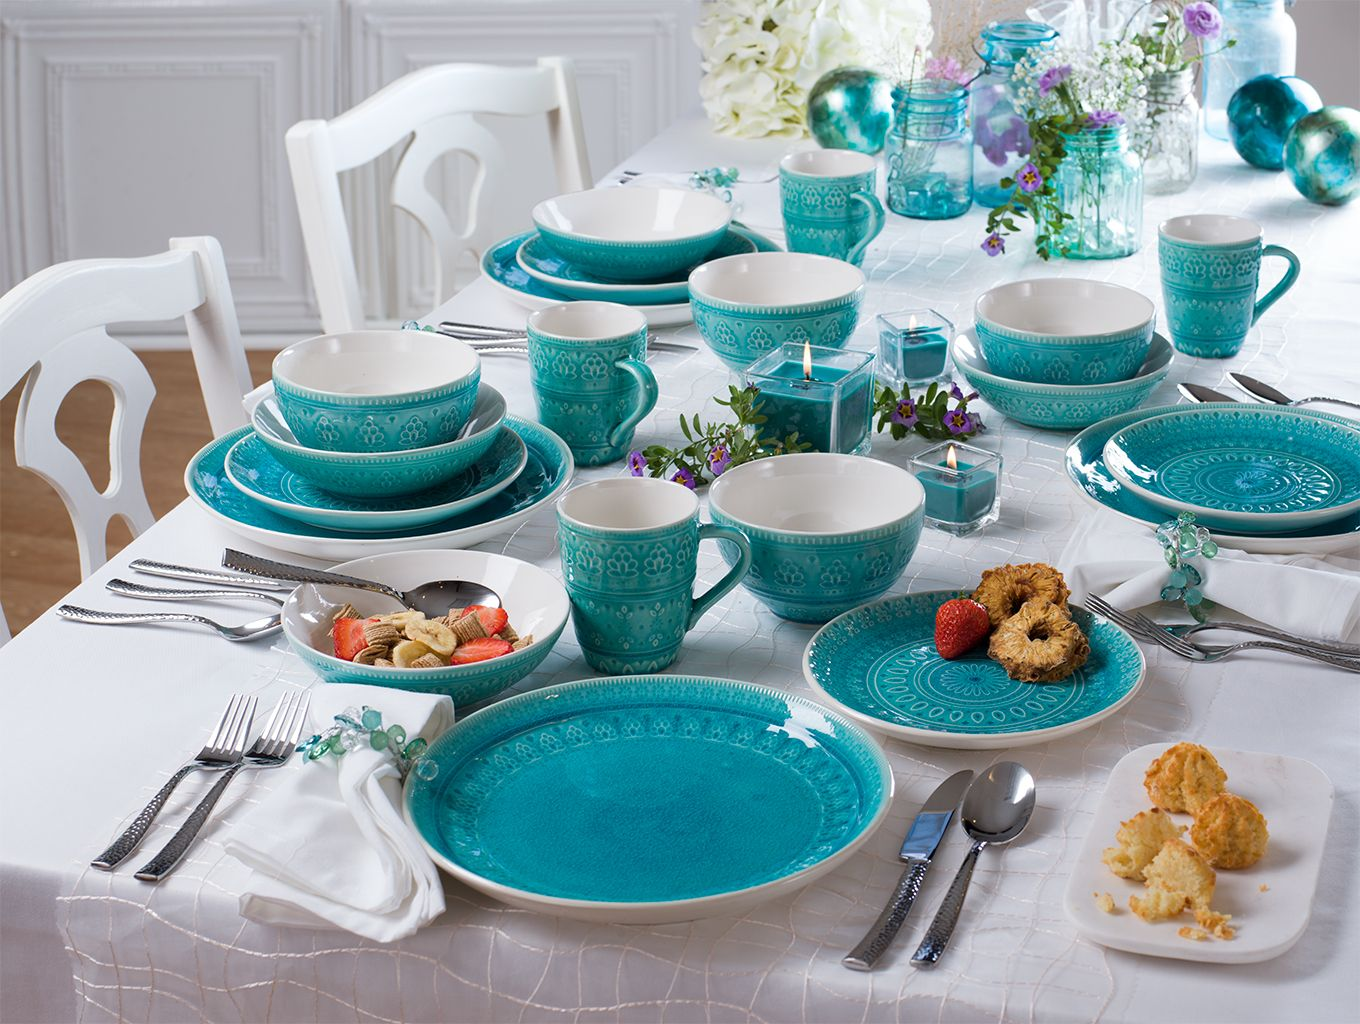 Fez Collection by Euro Ceramica in Turquoise & Fez Collection by Euro Ceramica in Turquoise | Top Sellers 2016 ...